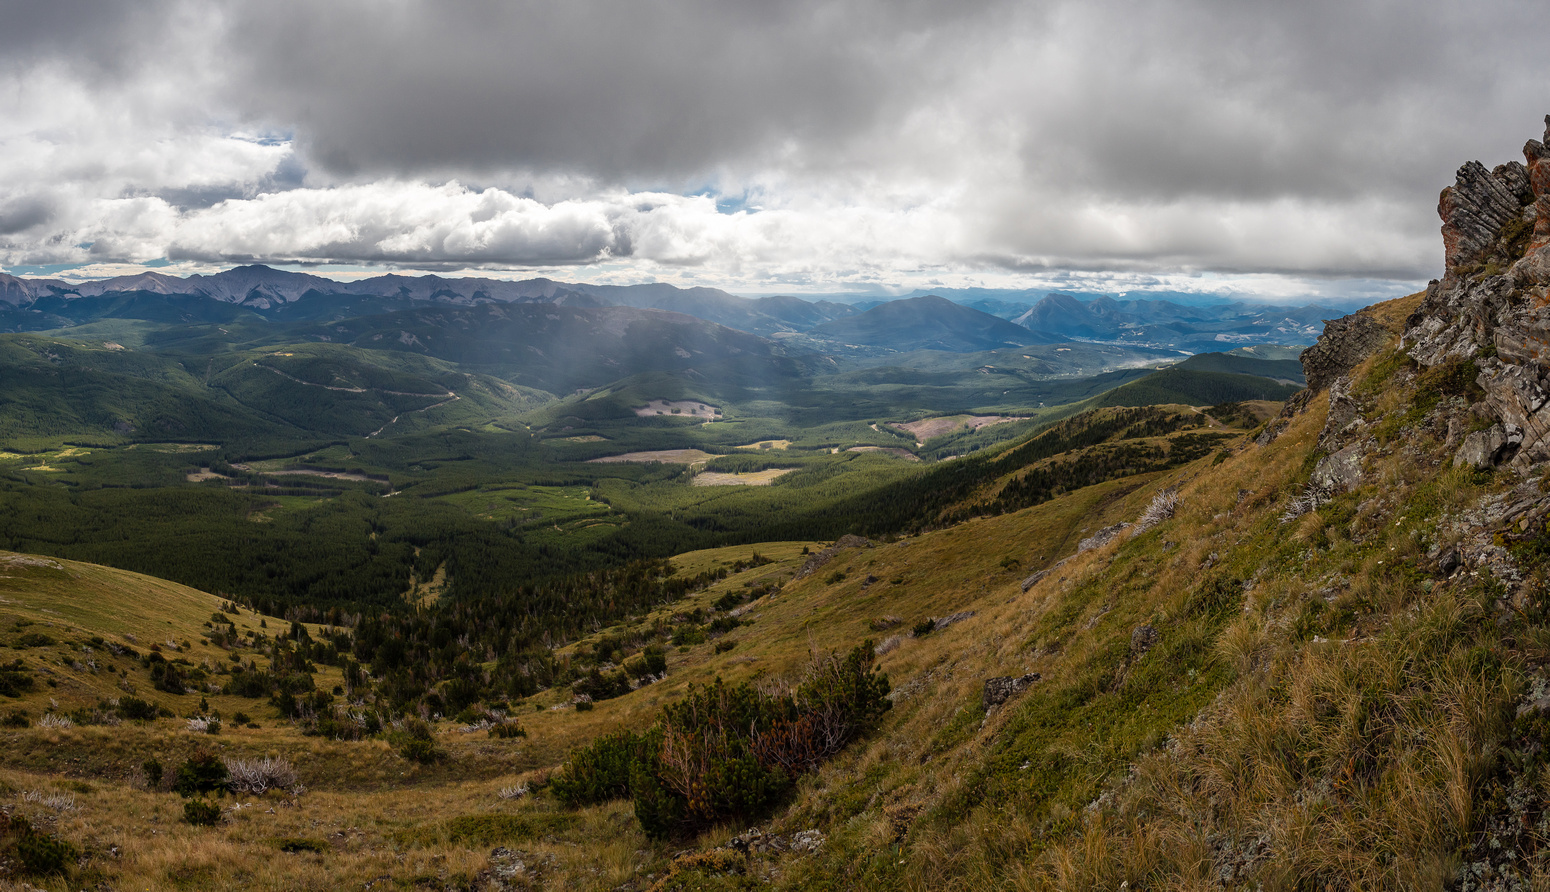 Looking back along the south end of McGillivray towards the town of Coleman as we gain the ridge crest.